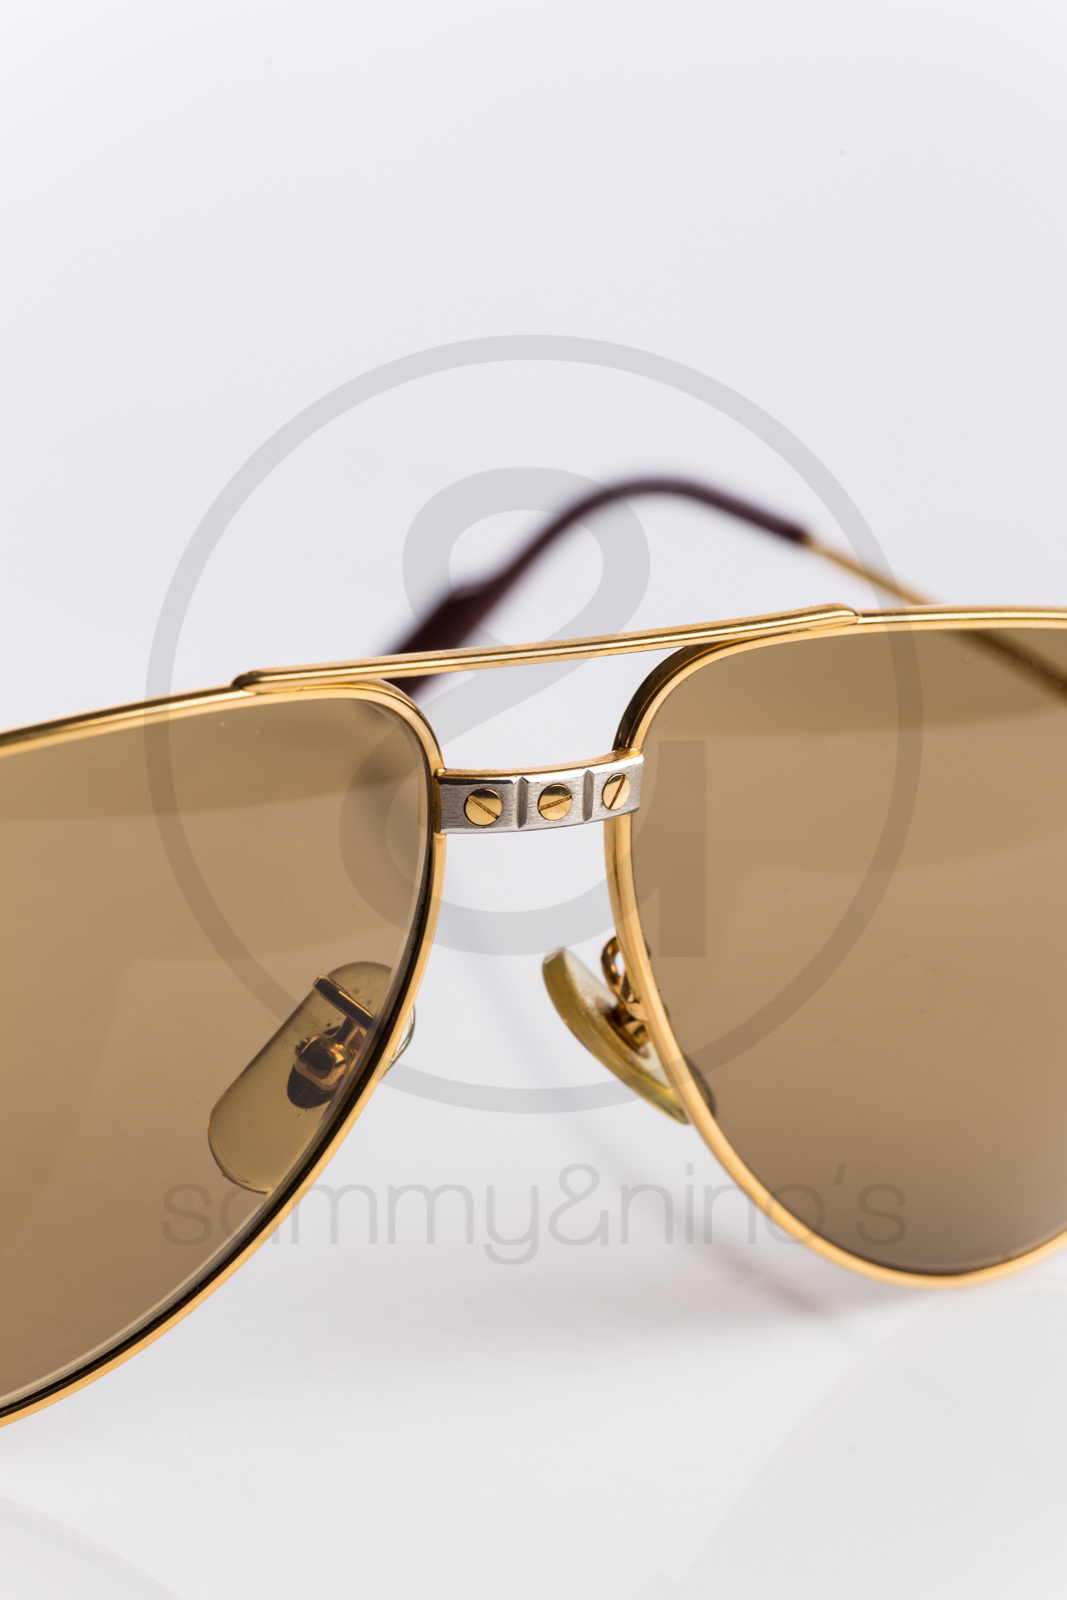 851d543c2101 Cartier Santos Aviator Sunglasses Dumont - Restaurant and Palinka Bar